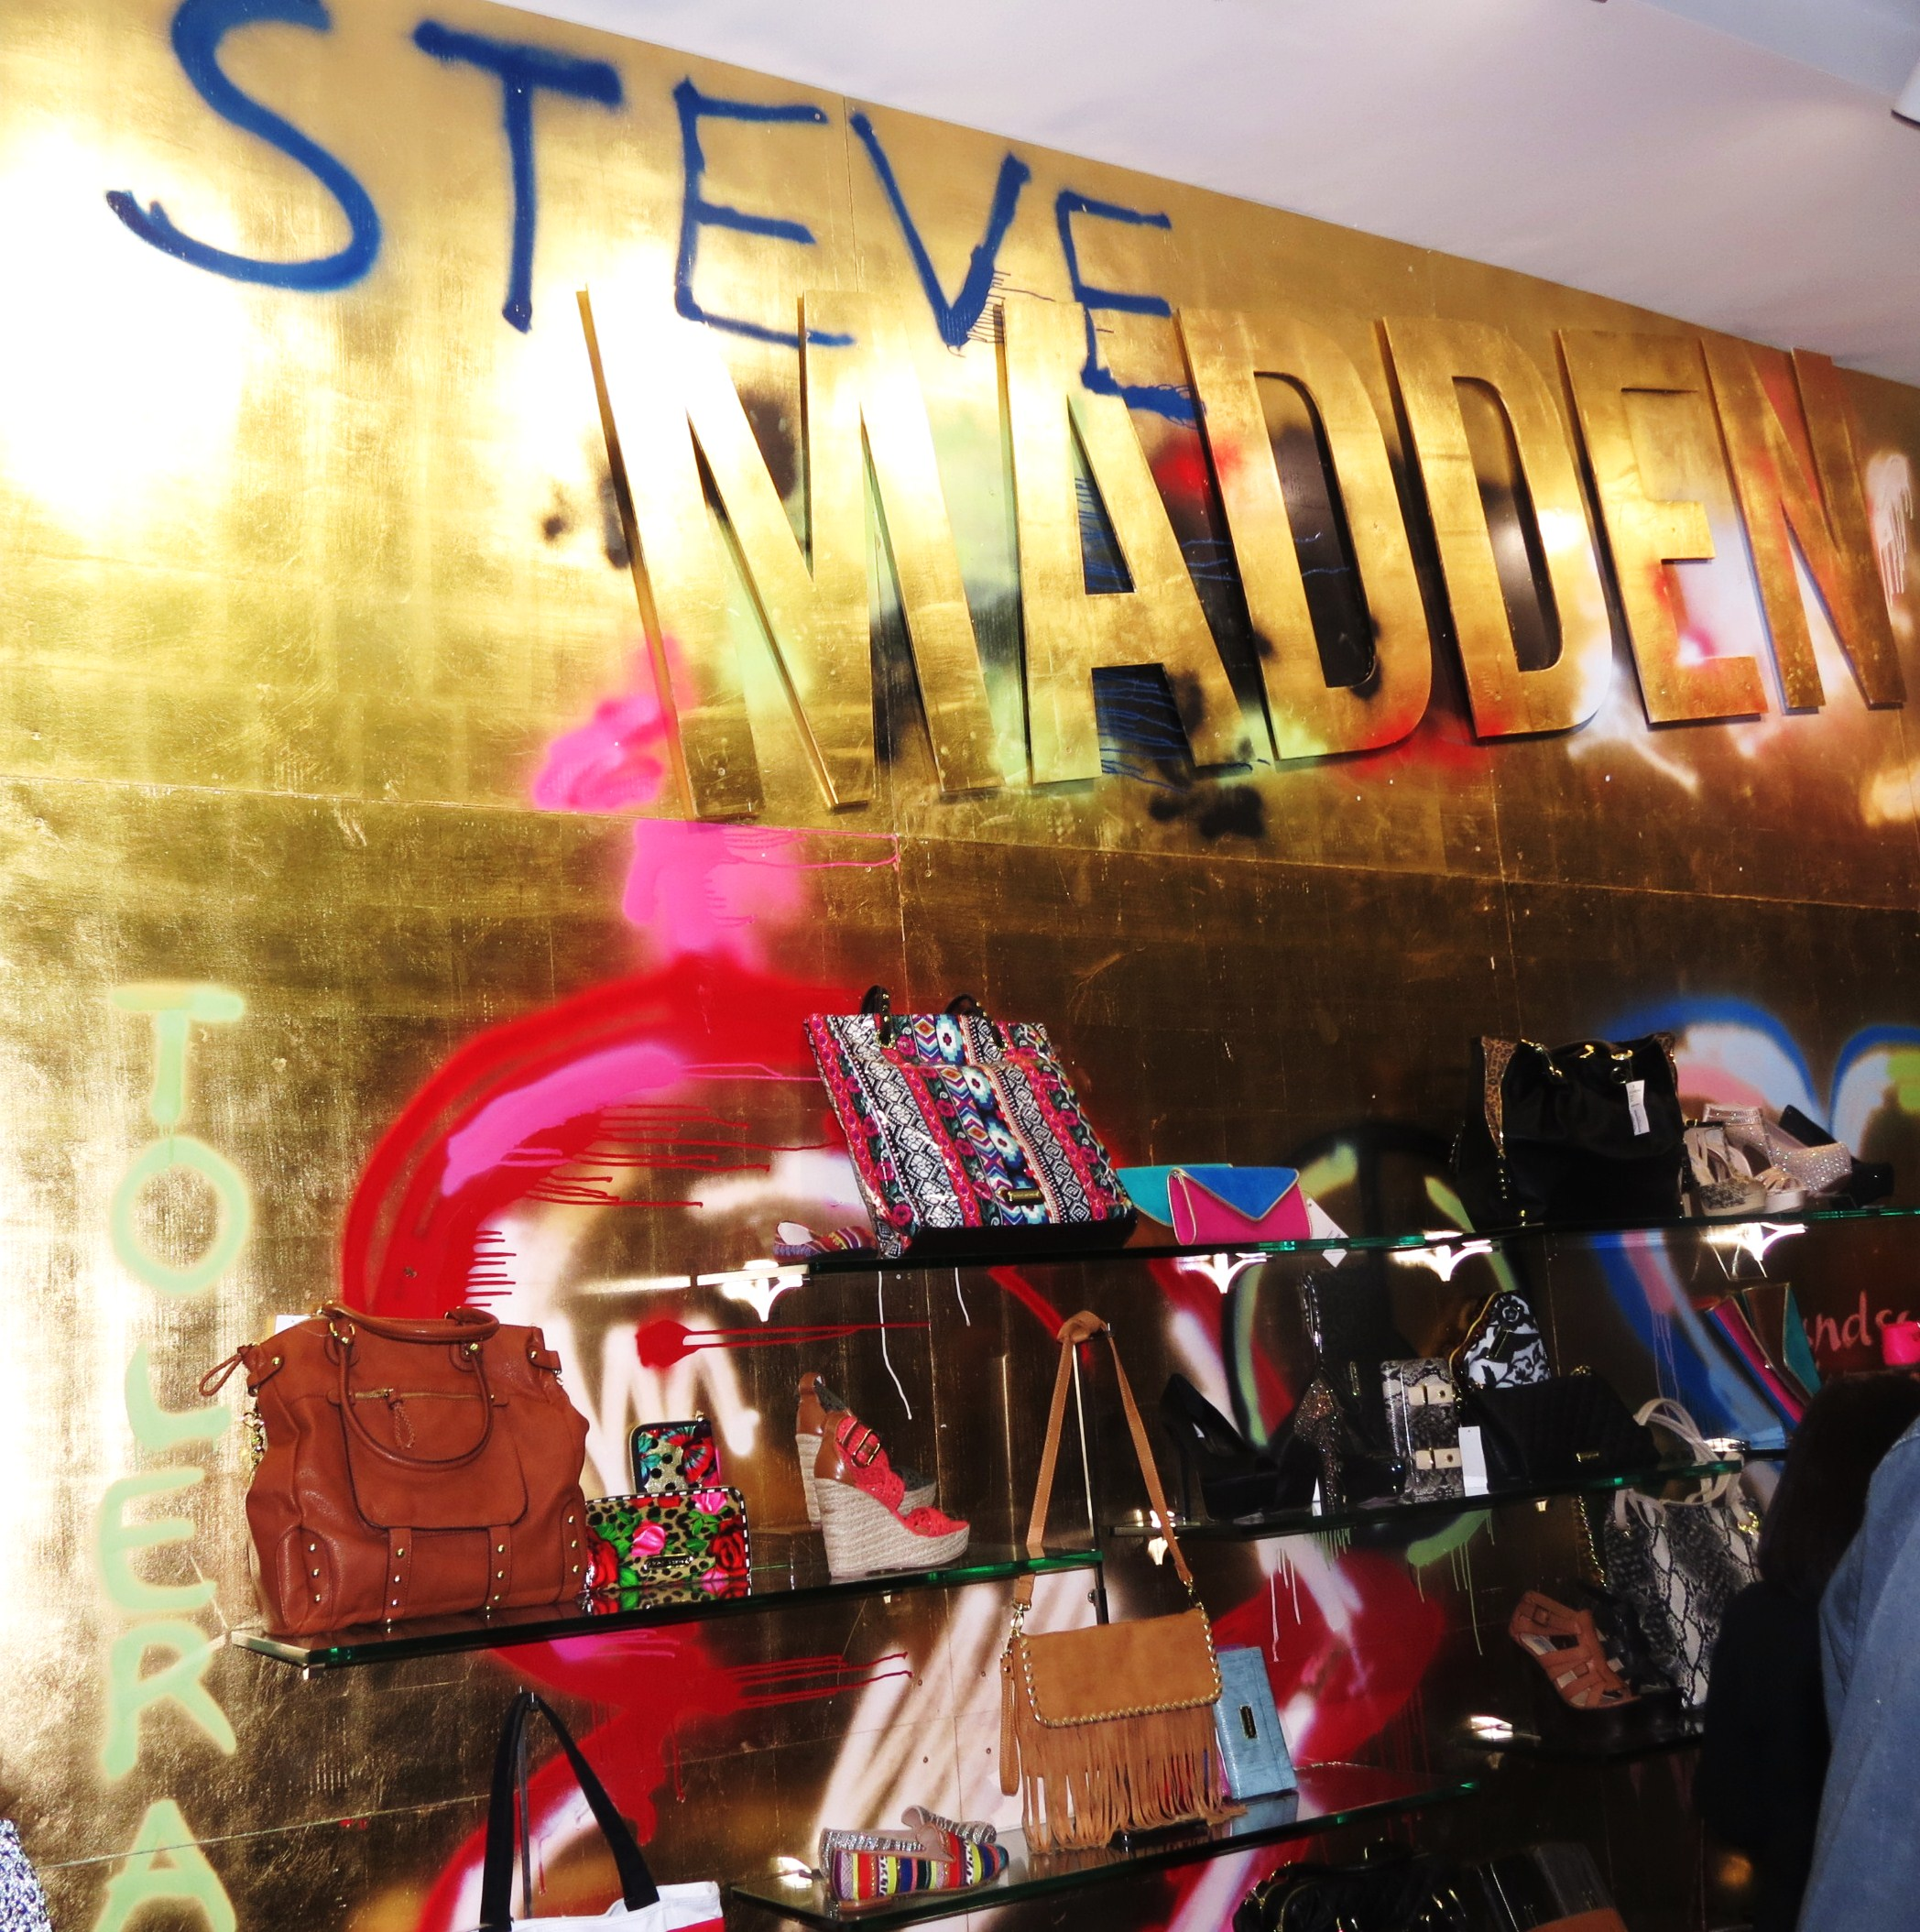 Steve Madden Shoe Store in Cape Town